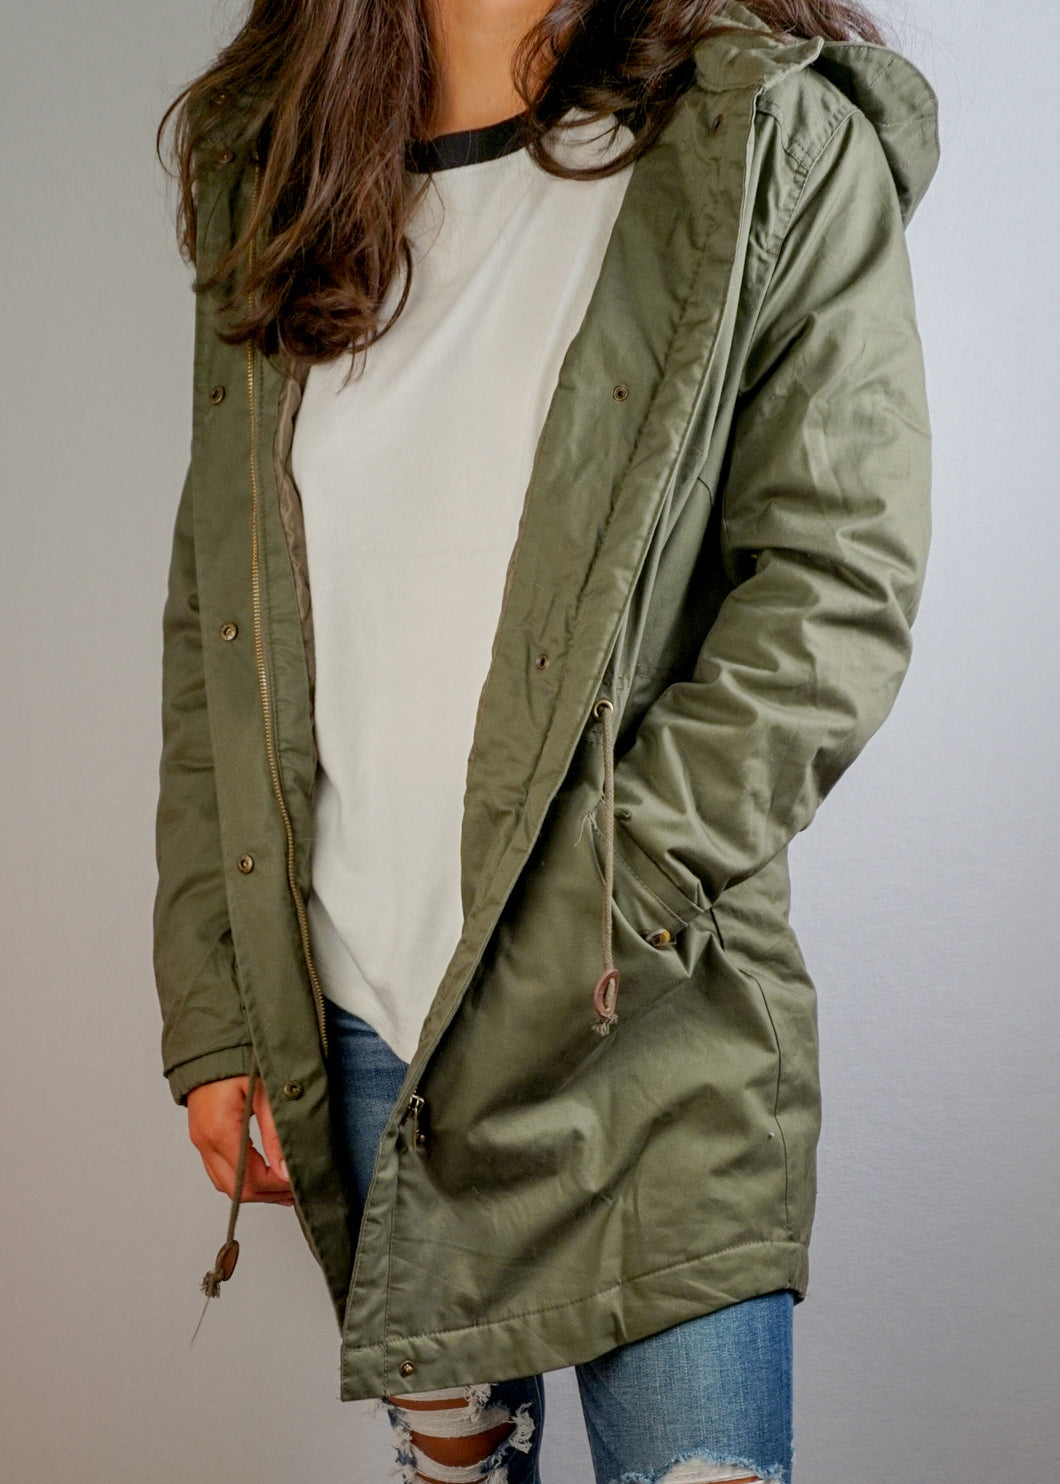 Hooded Parka Jacket - In Your Space Boutique